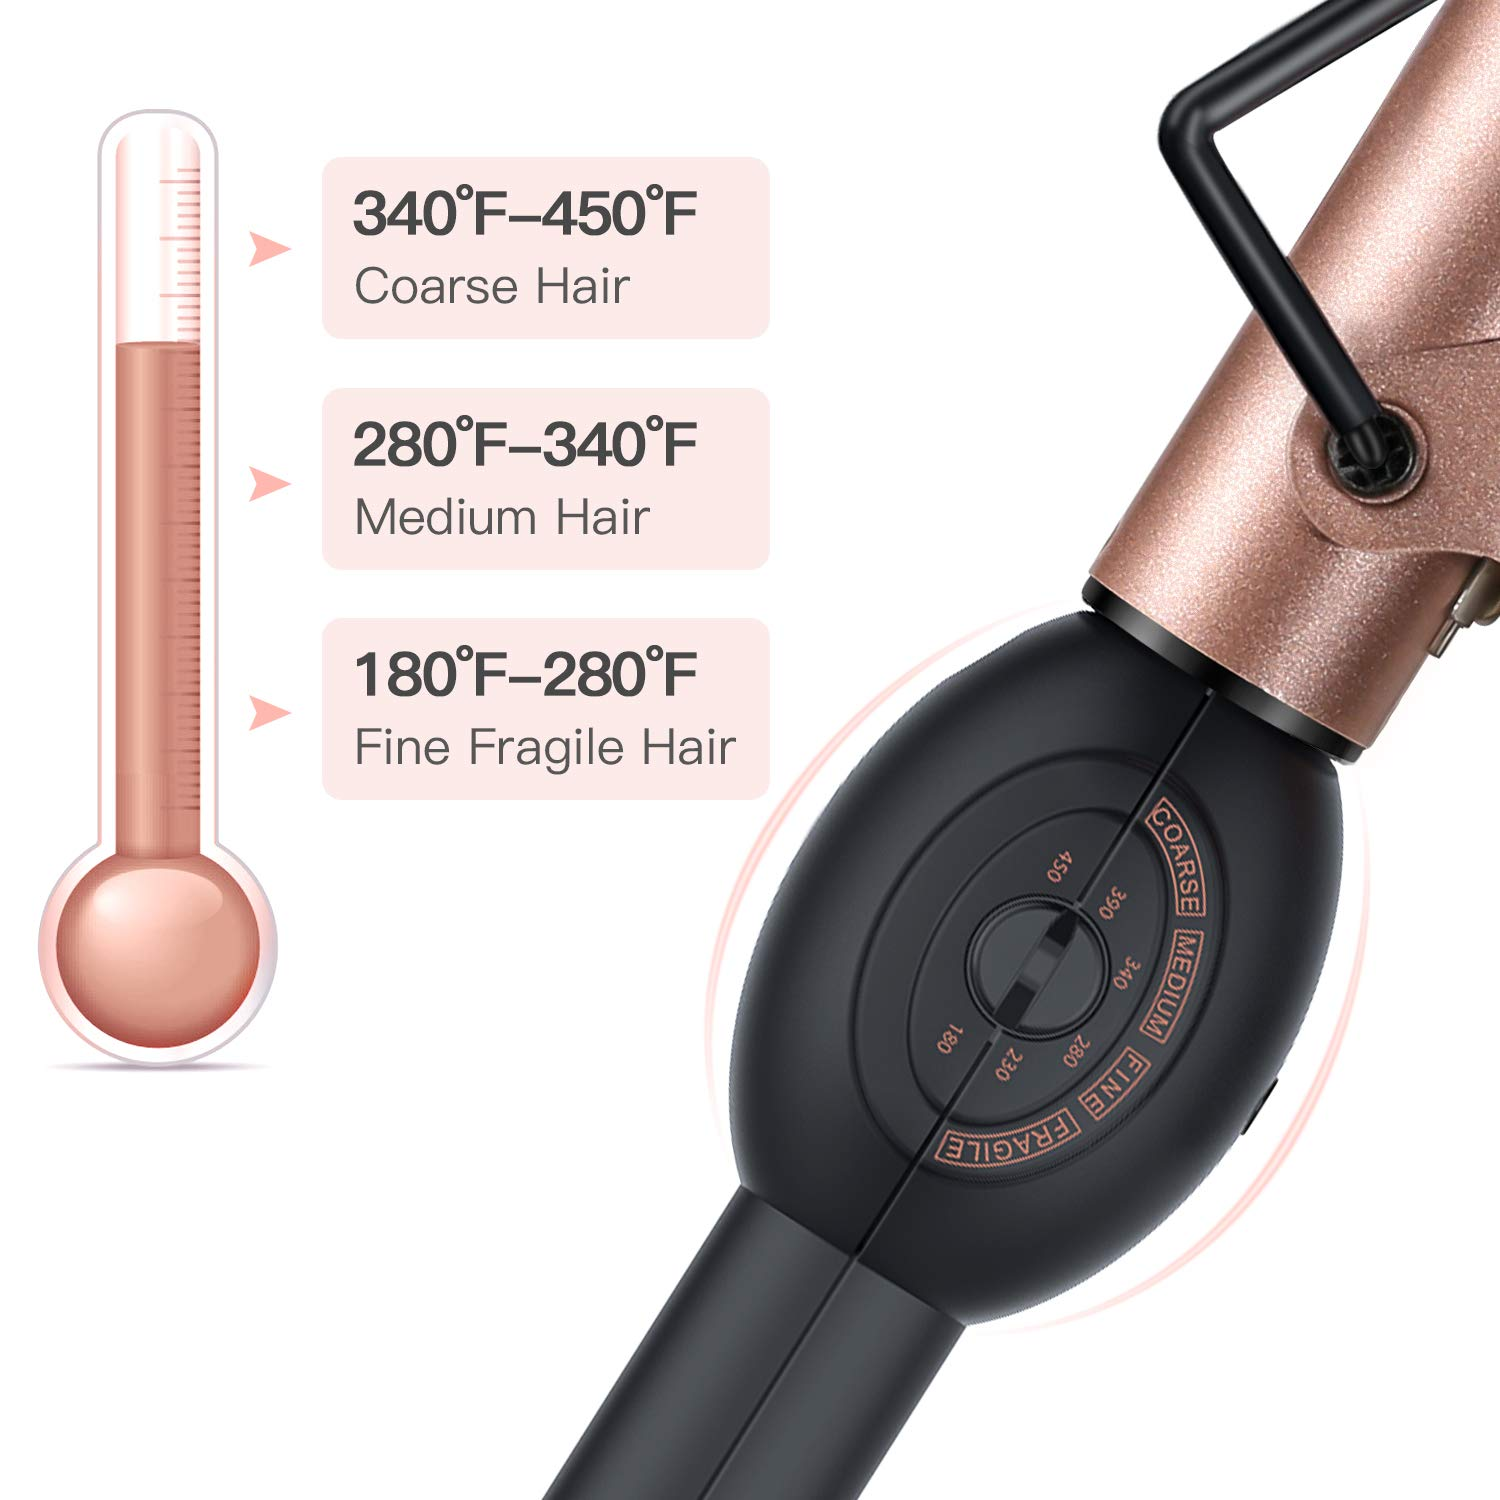 BESTOPE Curling Iron 1 inch Tourmaline Ceramic Curling Wand, Instant Heat Ceramic Curling Iron with Rotary Temperature Dial 1 Hair Styling Irons for All Hair Types – 180-450 F Include Glove